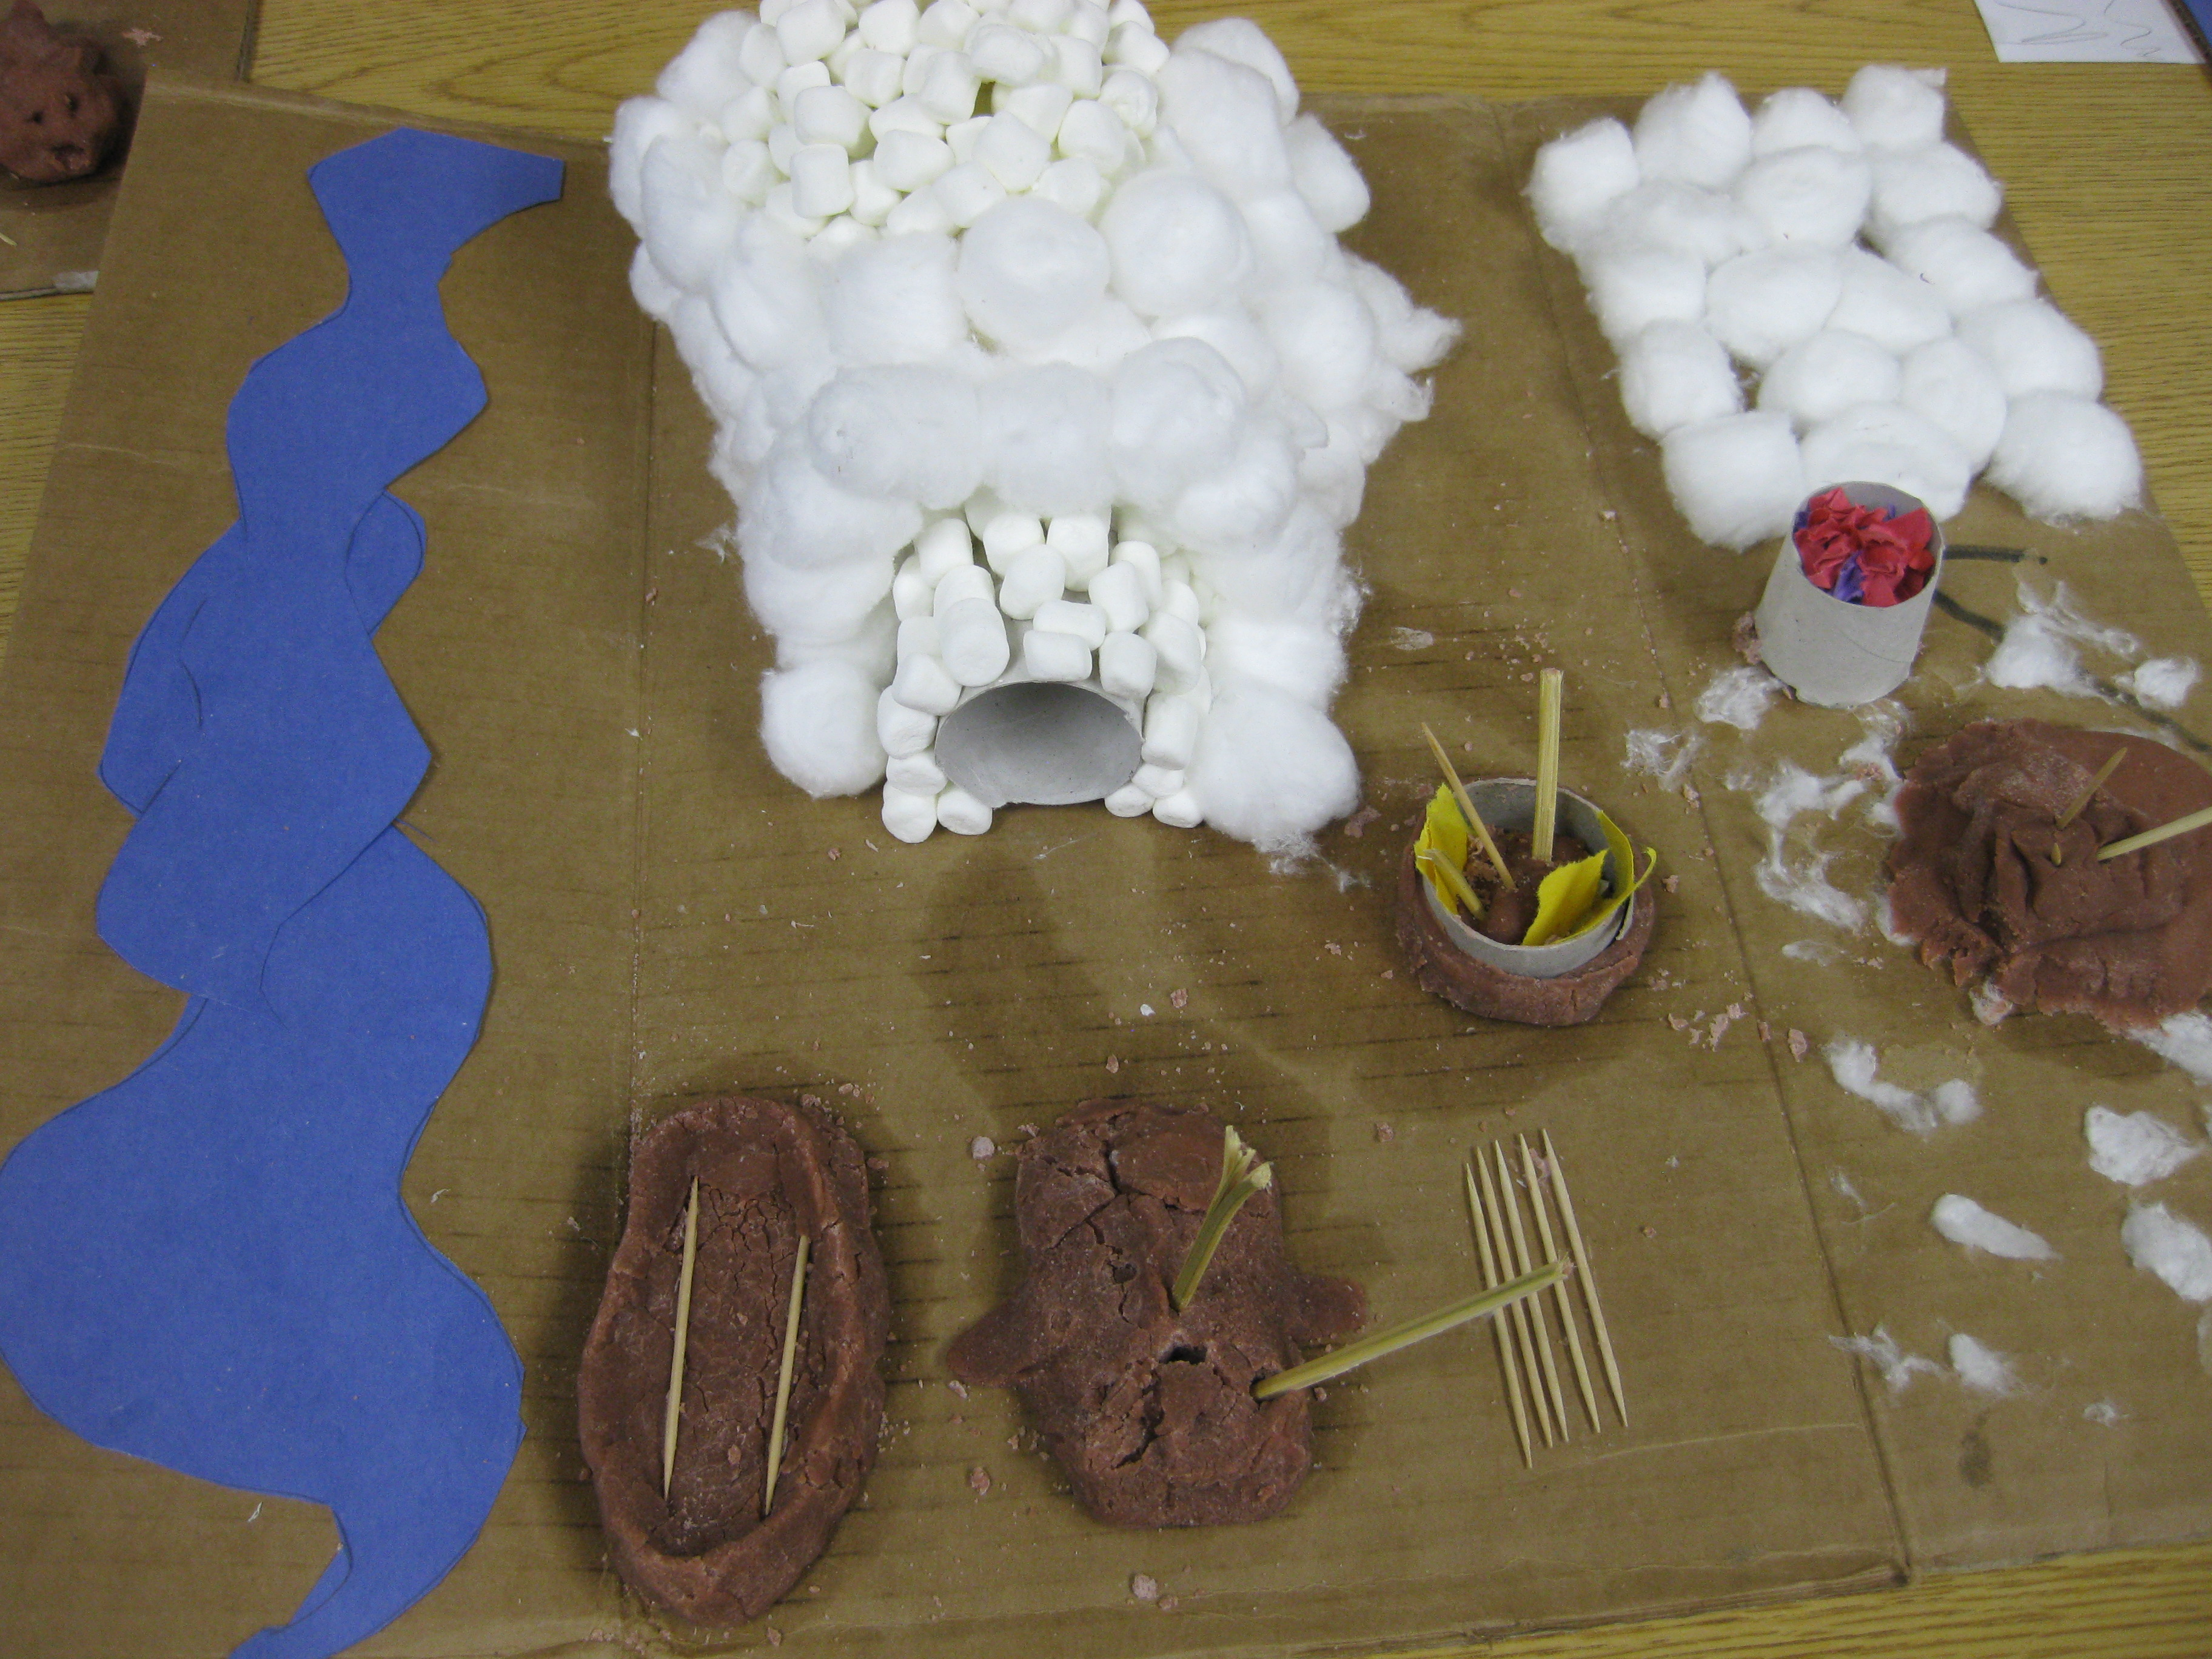 Native American Dwelling Projects